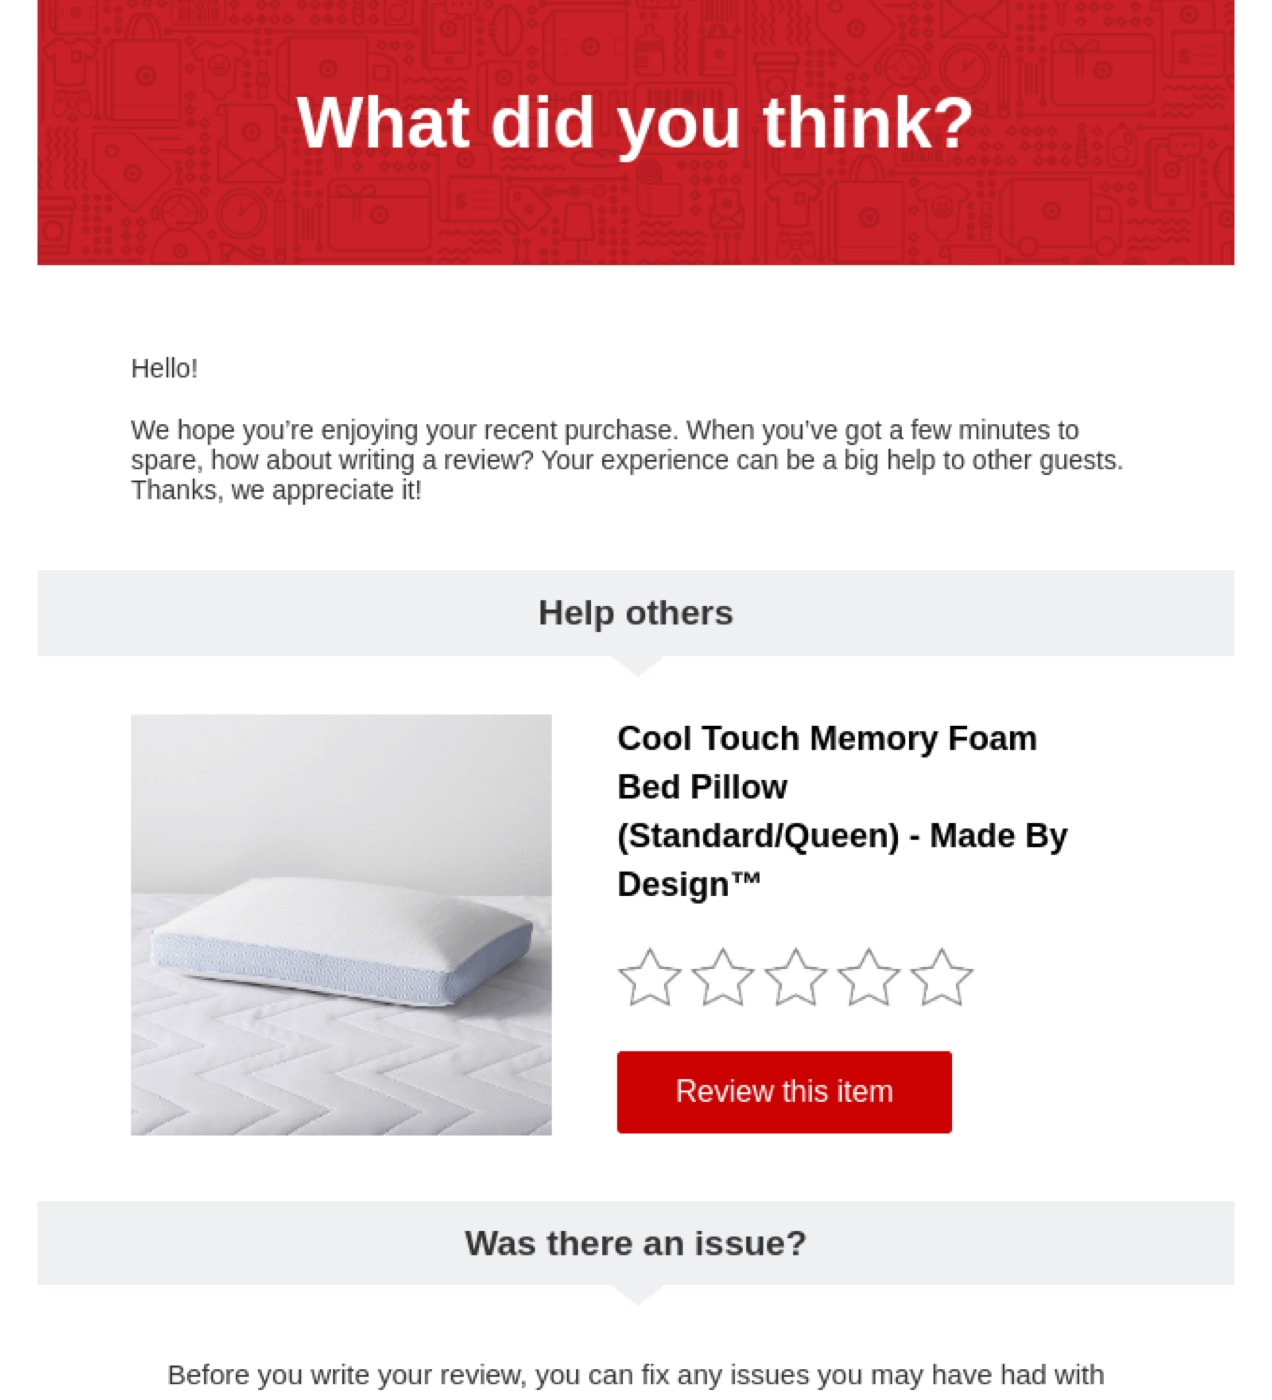 Target email asking for a product review of a memory foam bed pillow